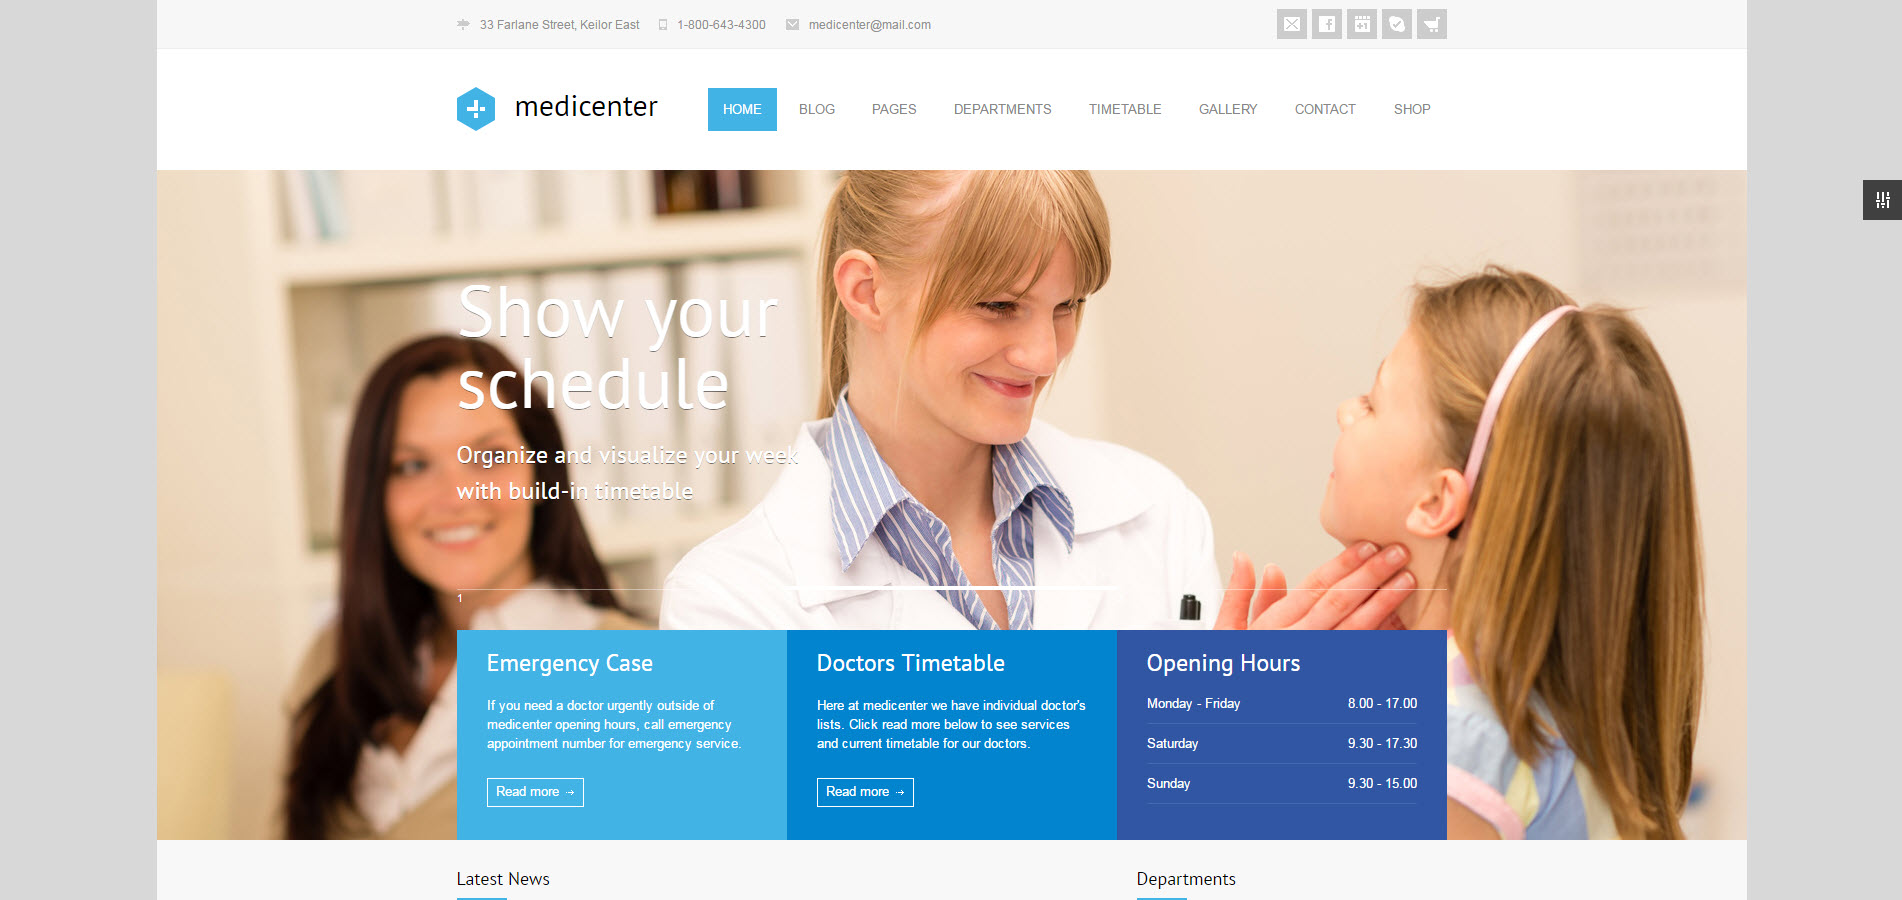 dentist wordpress theme - medicare wordpress theme - heath wordpress theme - theme for medical - theme for dentist